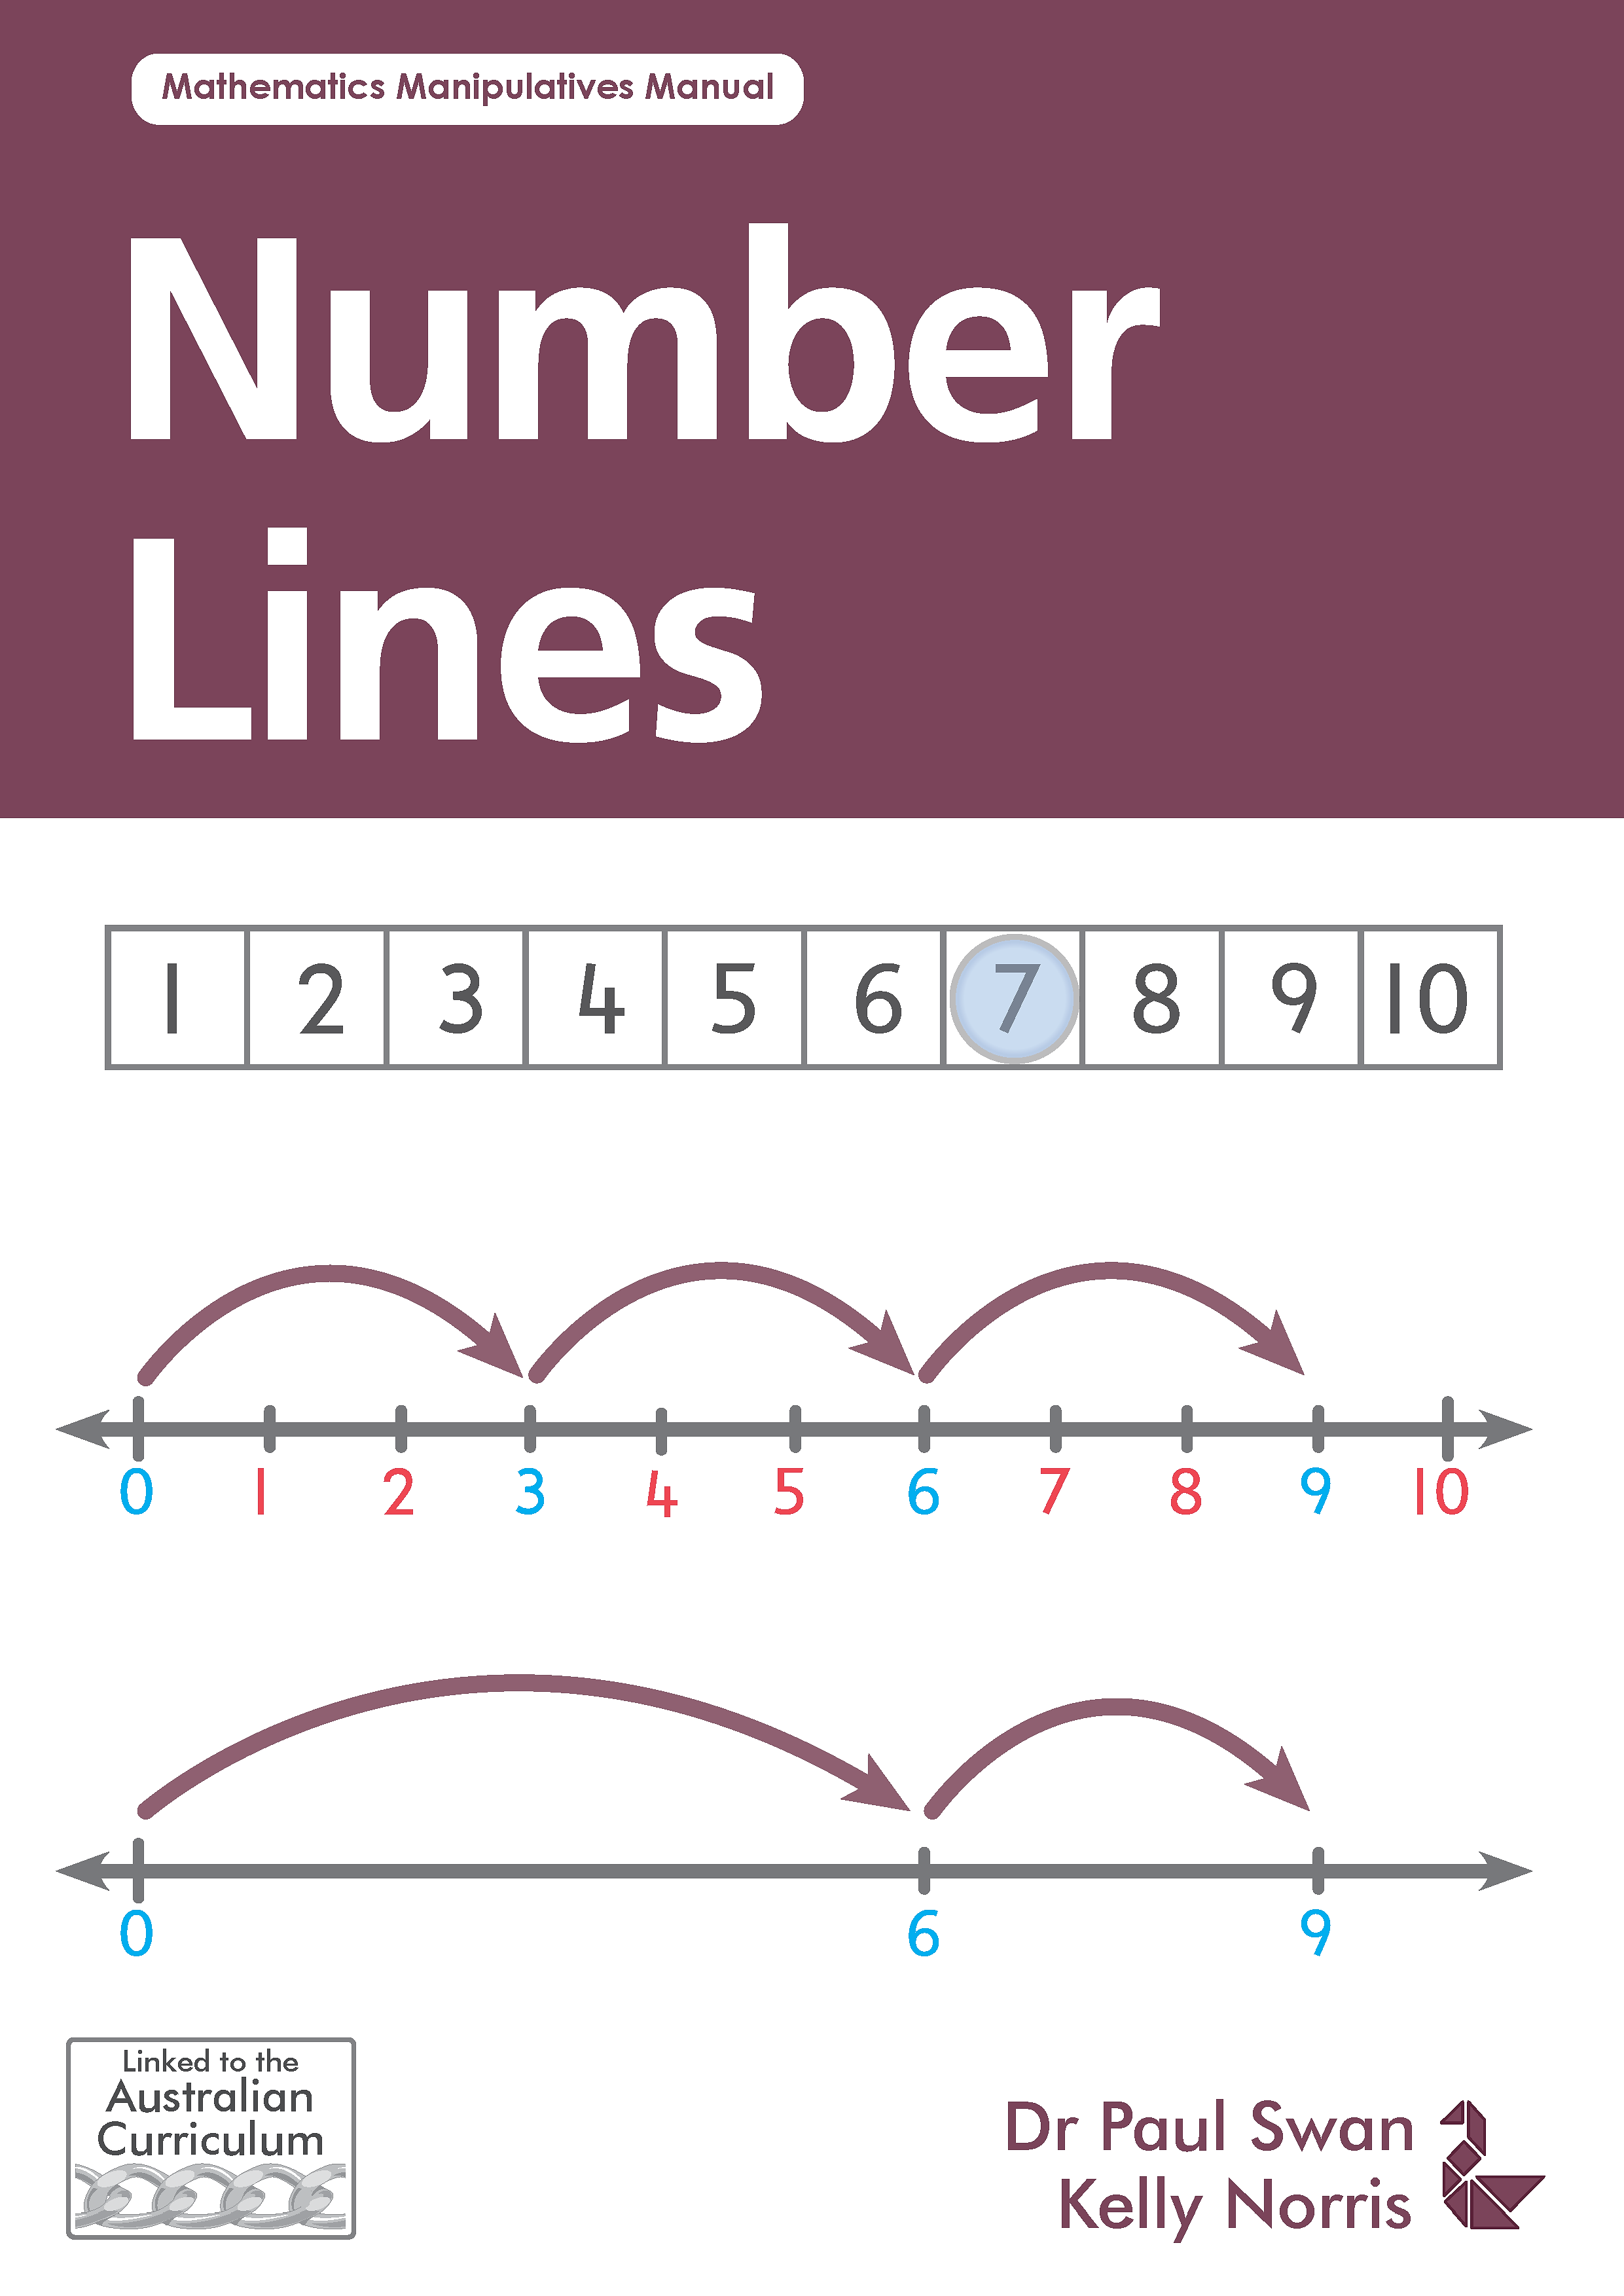 worksheet Numberlines dr paul swan mathematics books materials number lines comes with a series of games to demonstrate the progression ideas towards are included in book a4 size b